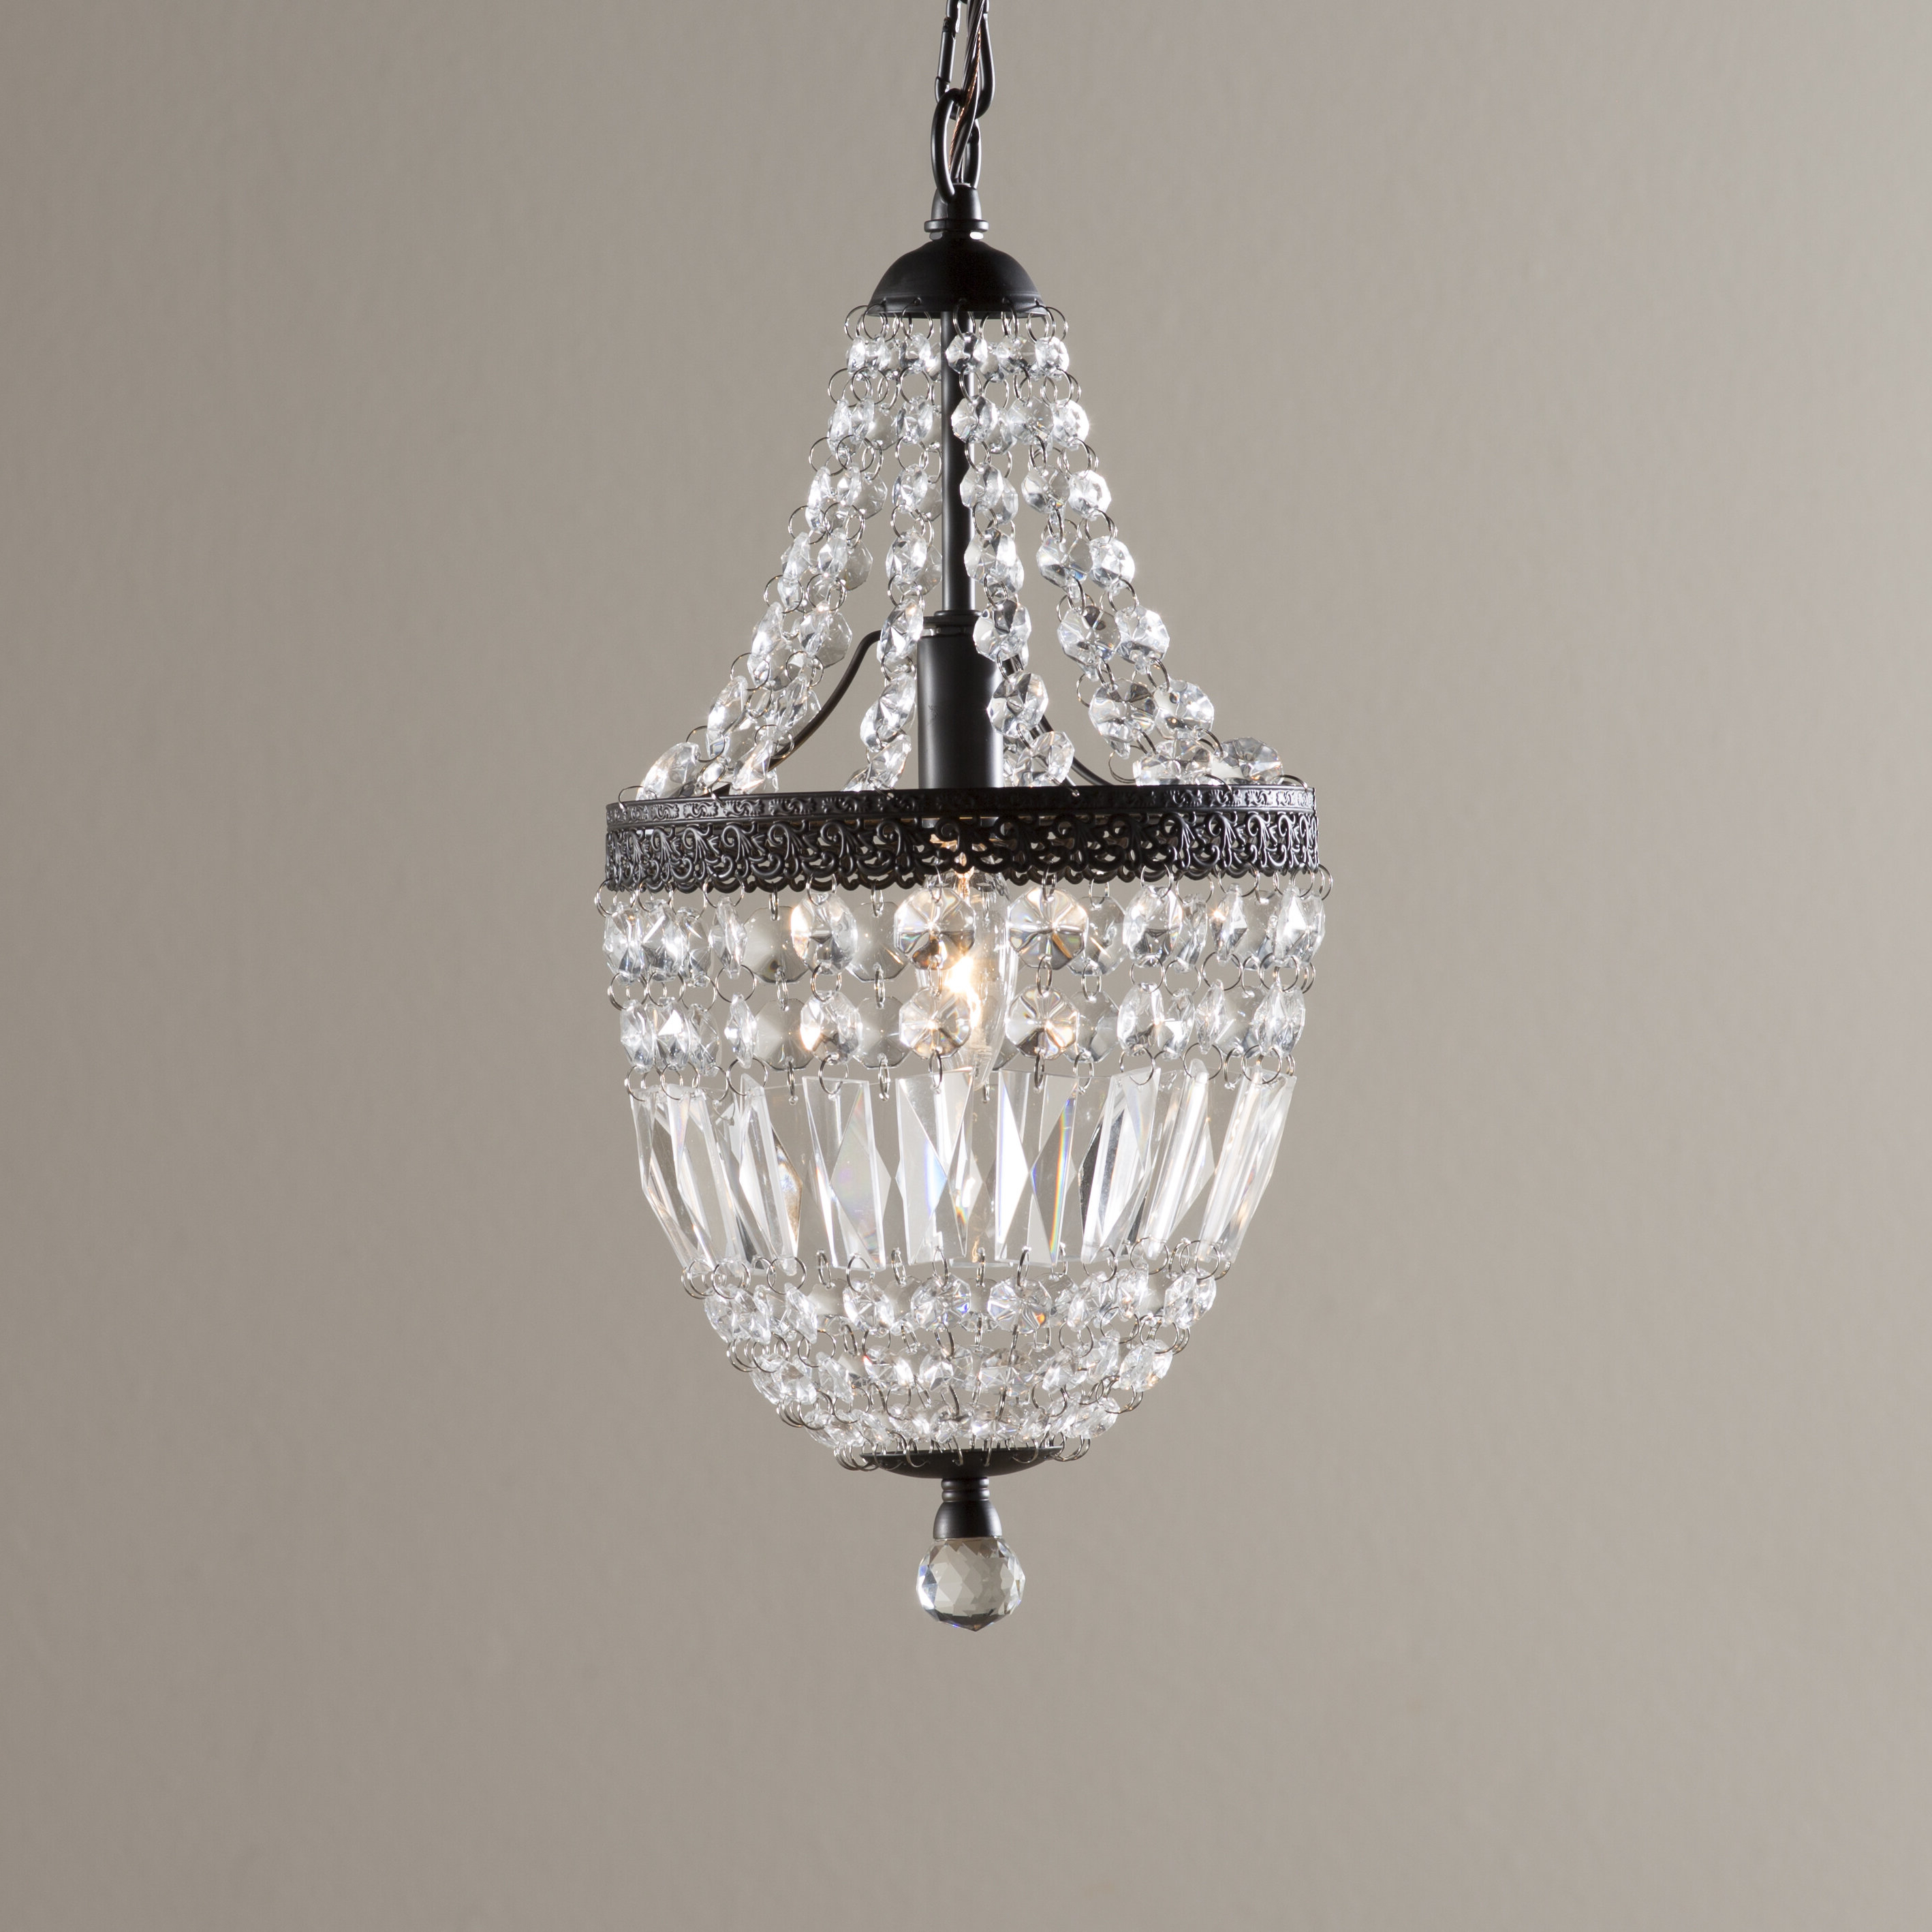 Spokane 1 Light Single Urn Pendant Regarding Most Up To Date Spokane 1 Light Single Urn Pendants (Gallery 1 of 20)